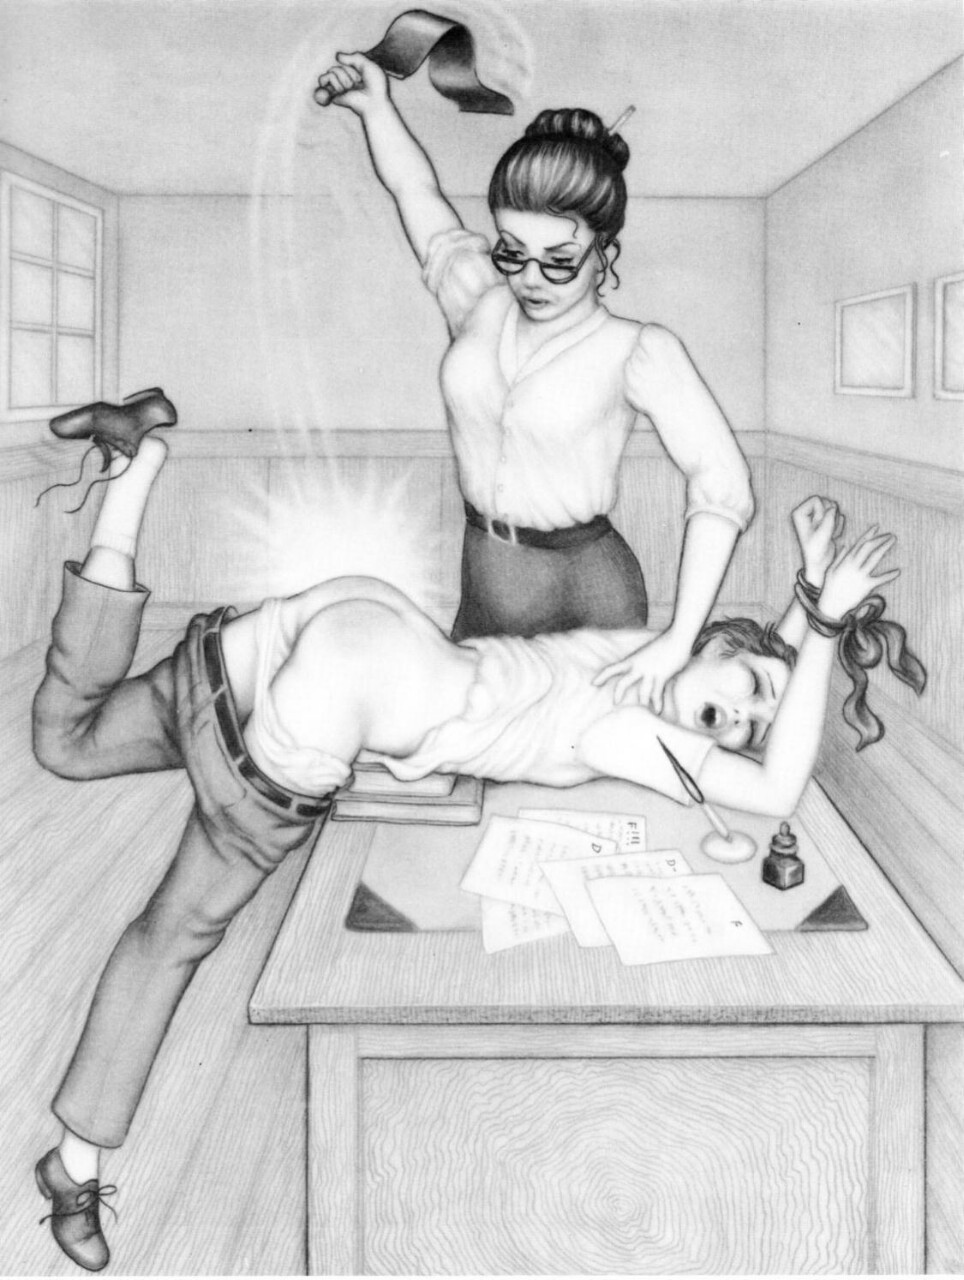 image Teacher spanking drawings male genital gay